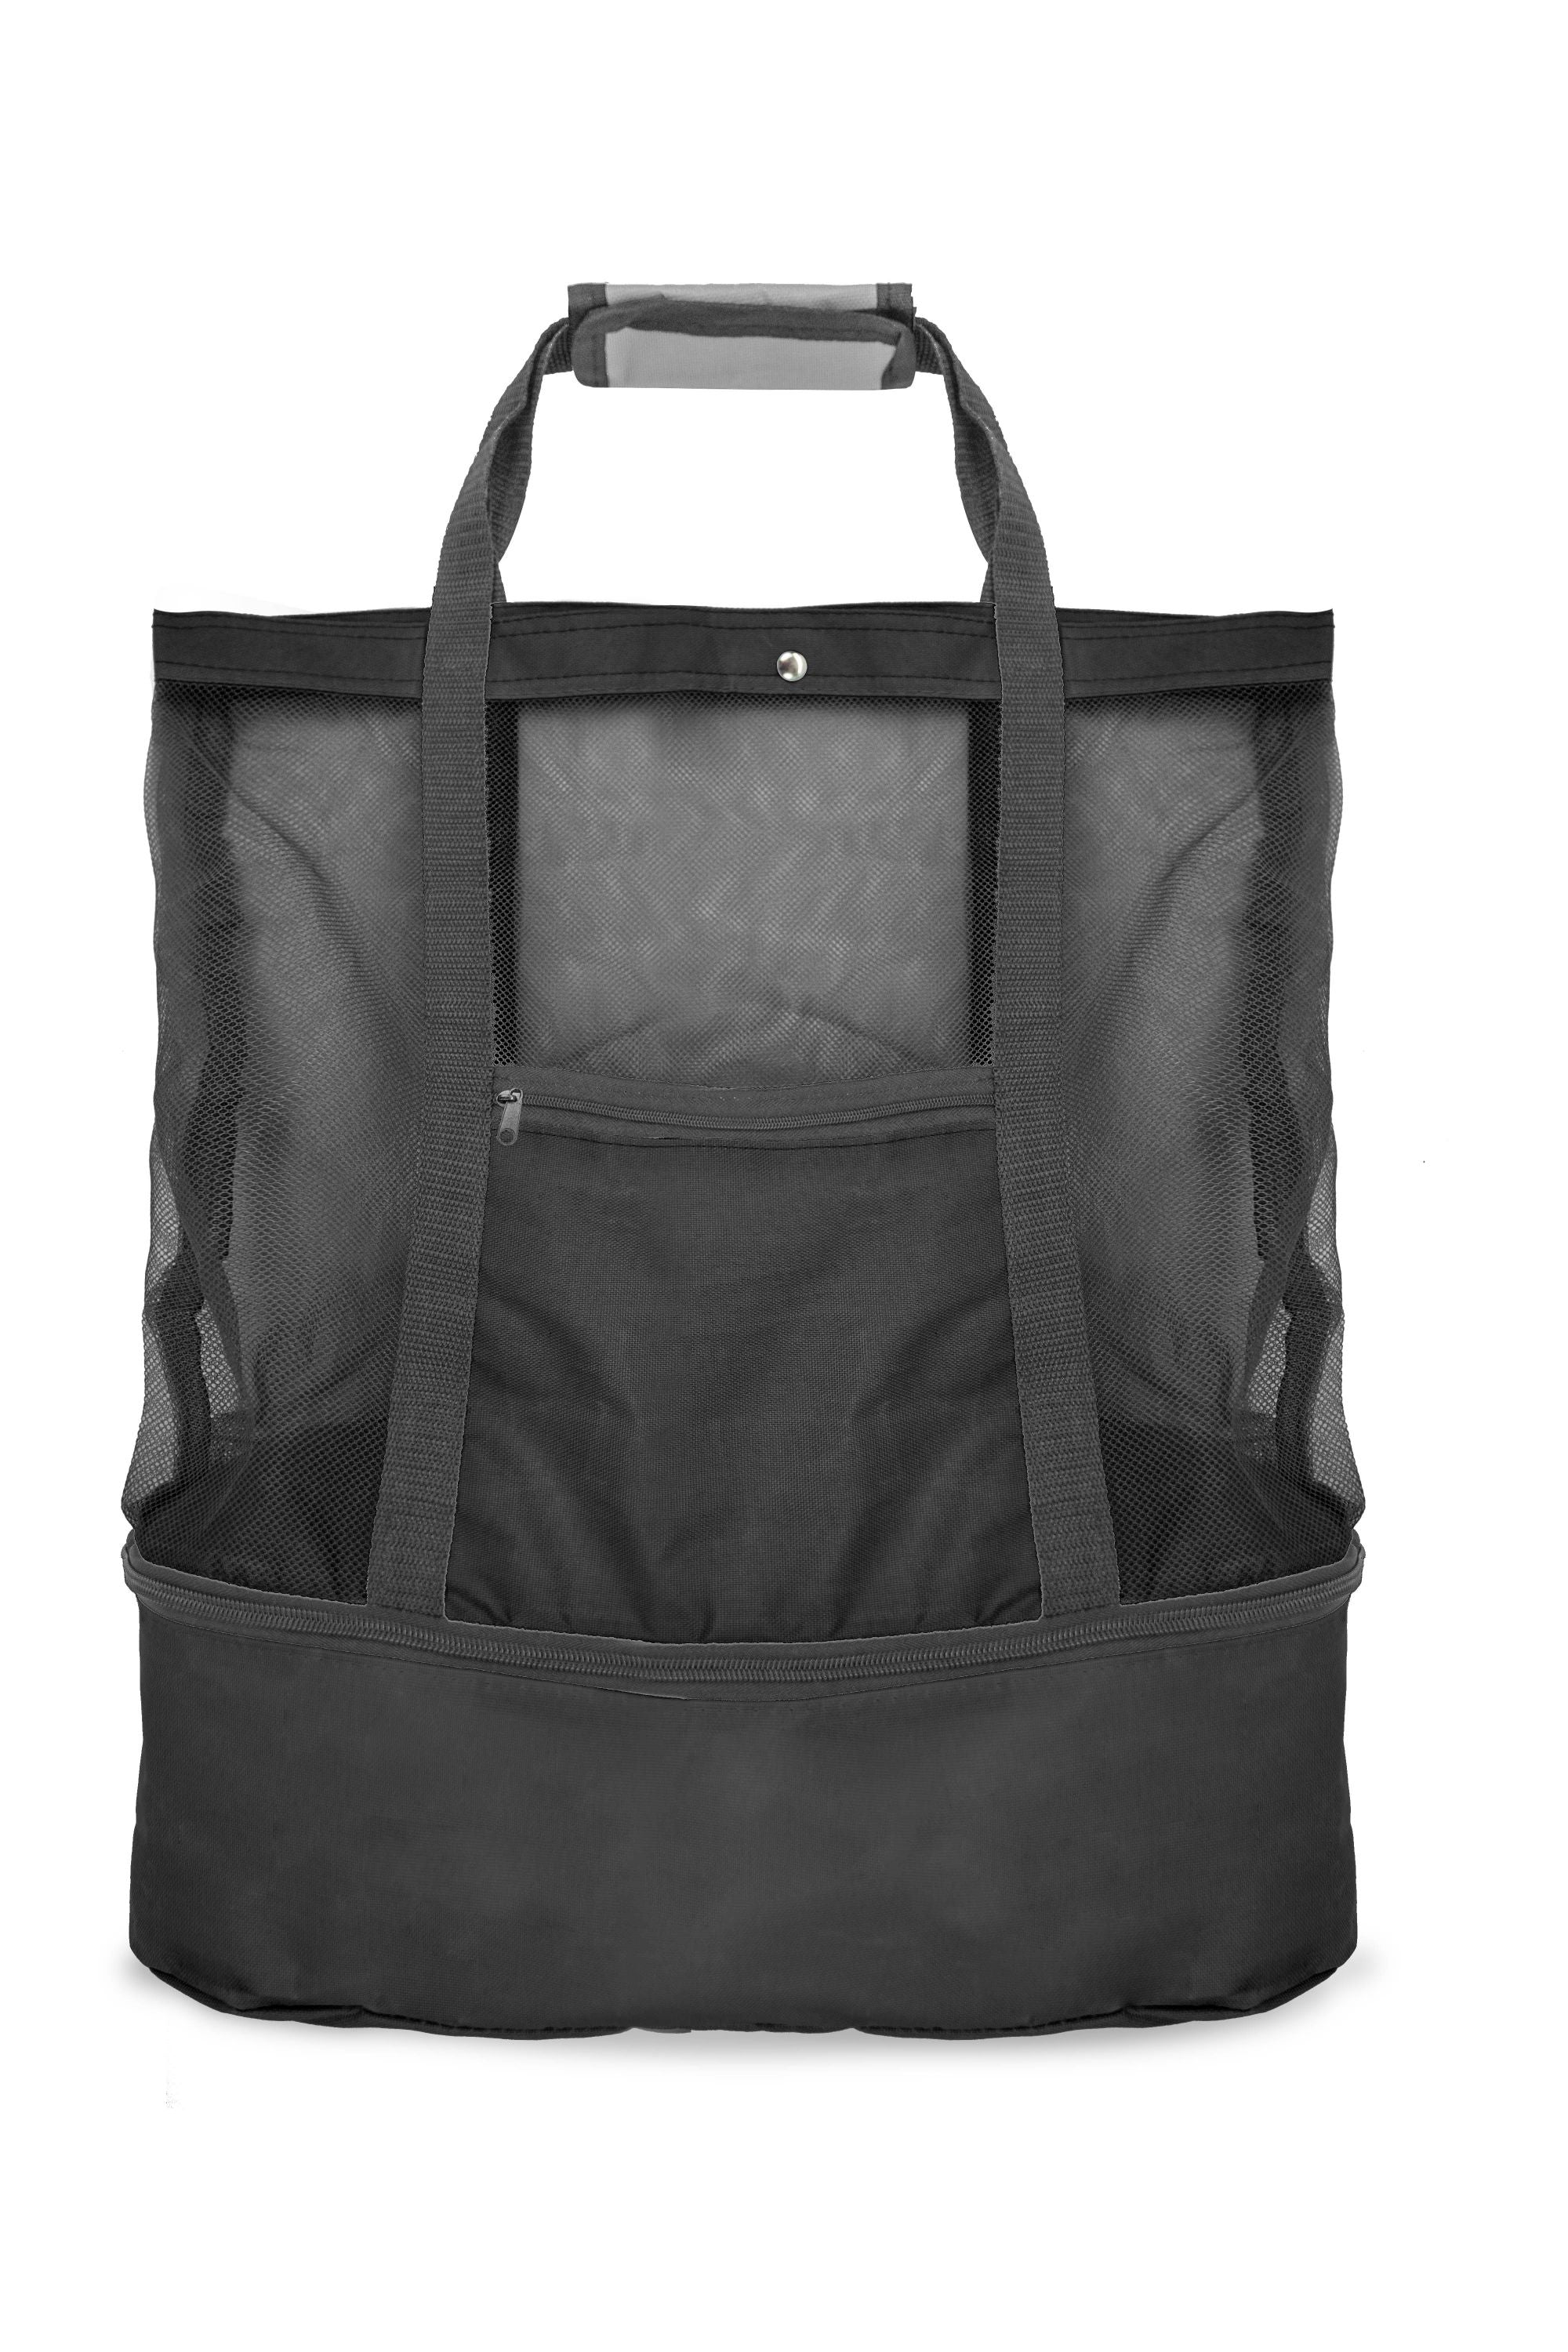 shopify-Insulated Cooler Picnic Beach Tote Bag-8